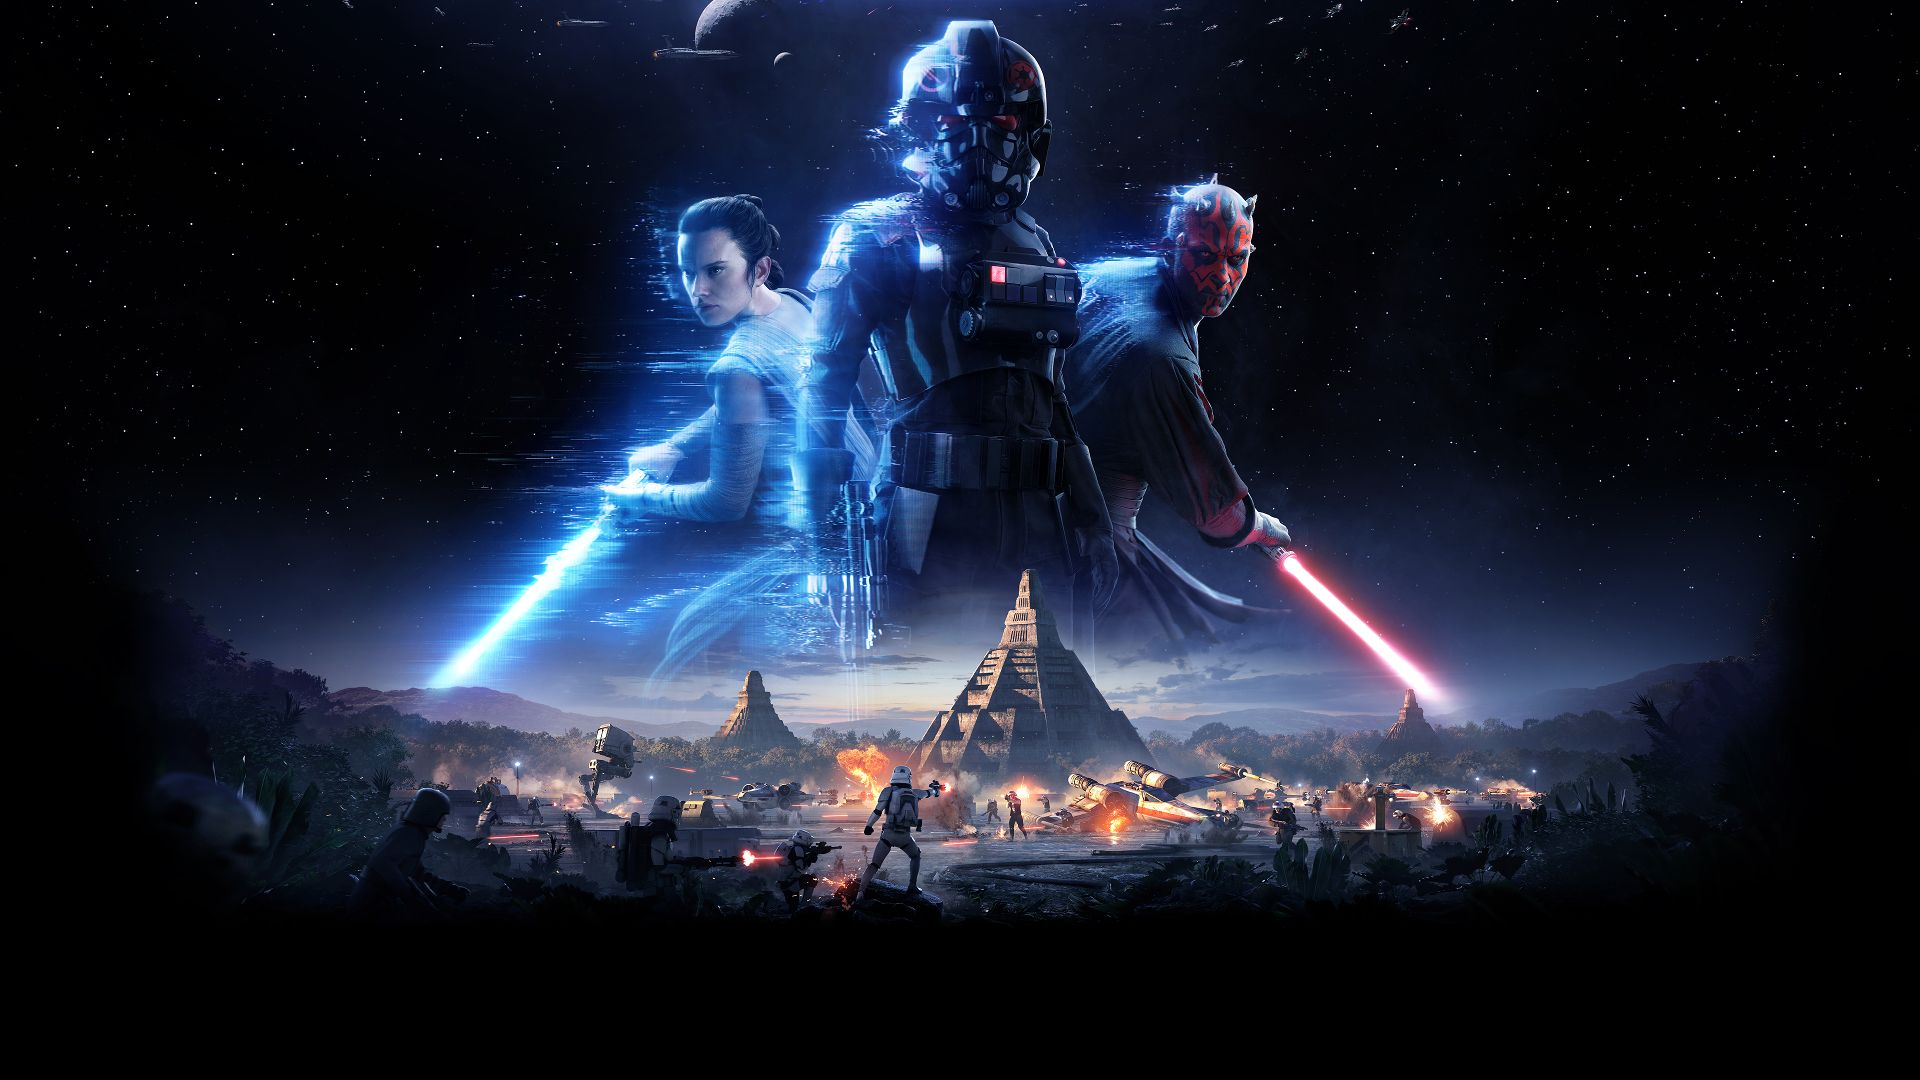 The Plug Gaming Talks Gaming News and New releases with live gameplay of Star Wars Battlefront II 11-20-17